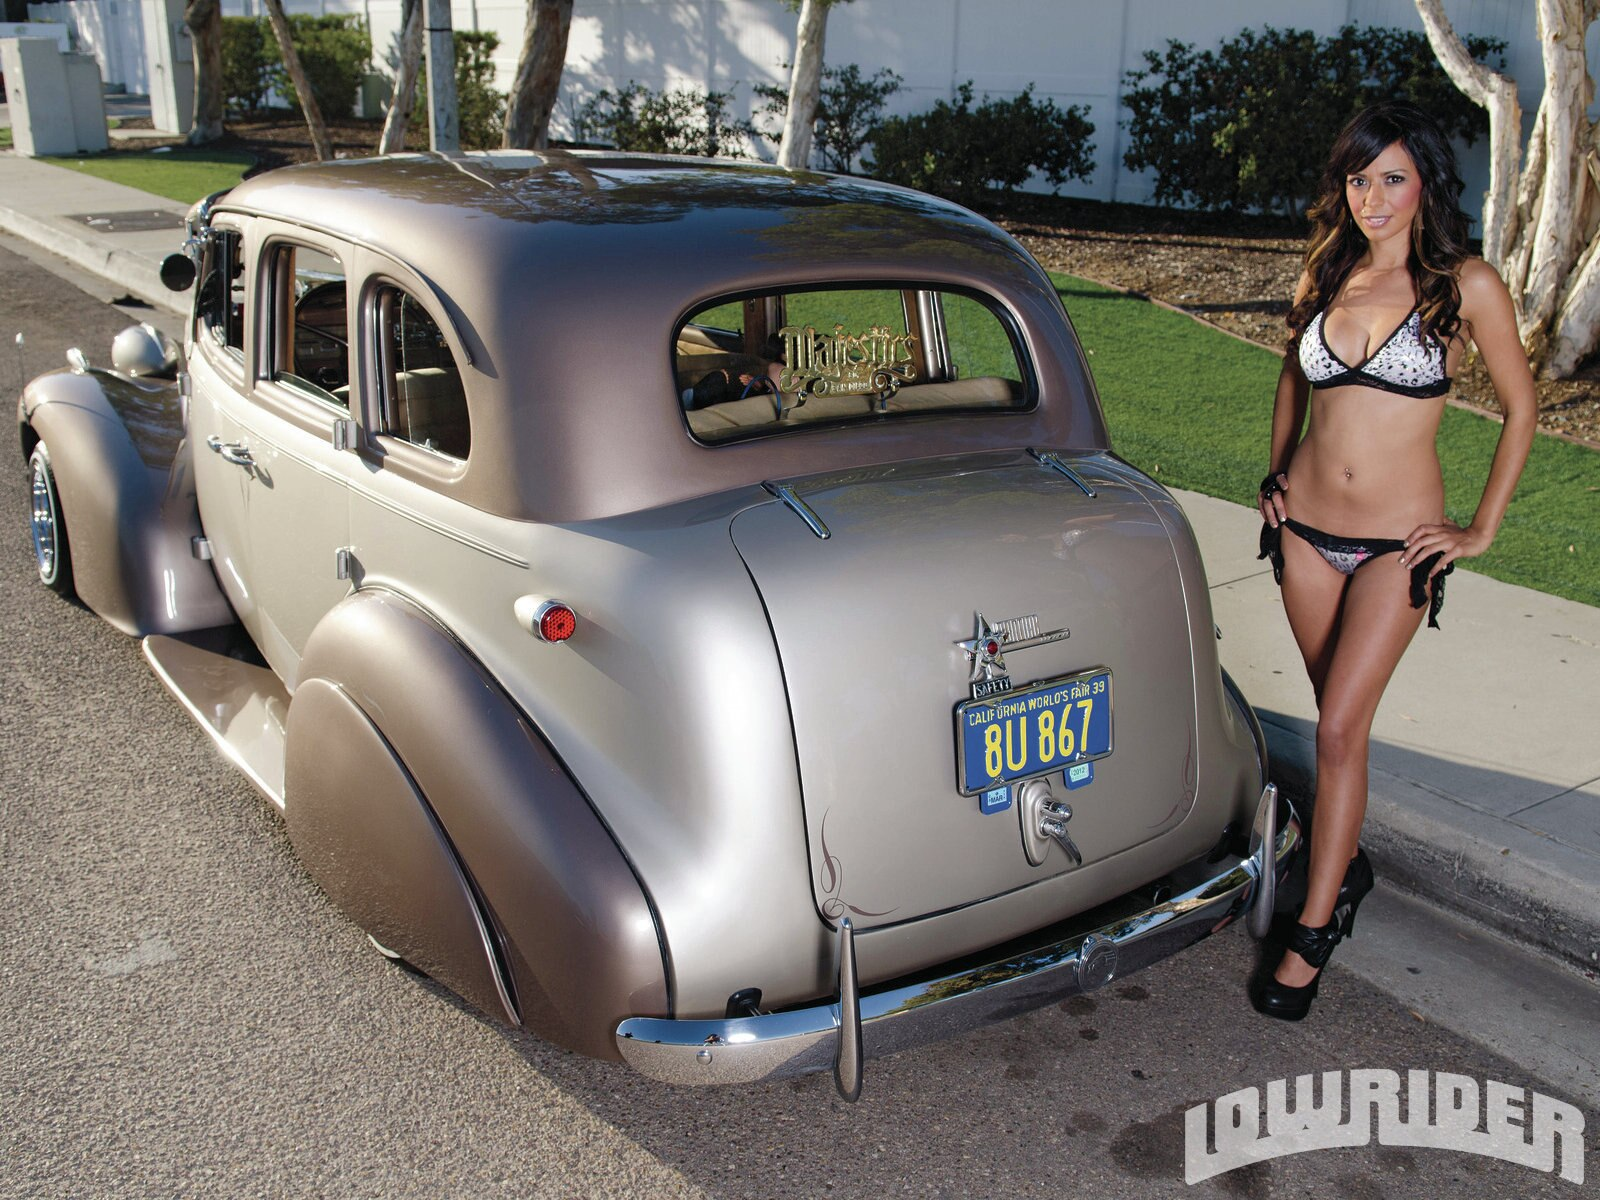 1205-lrmp-04-o-1939-pontiac-chieftain-rebeca-meza